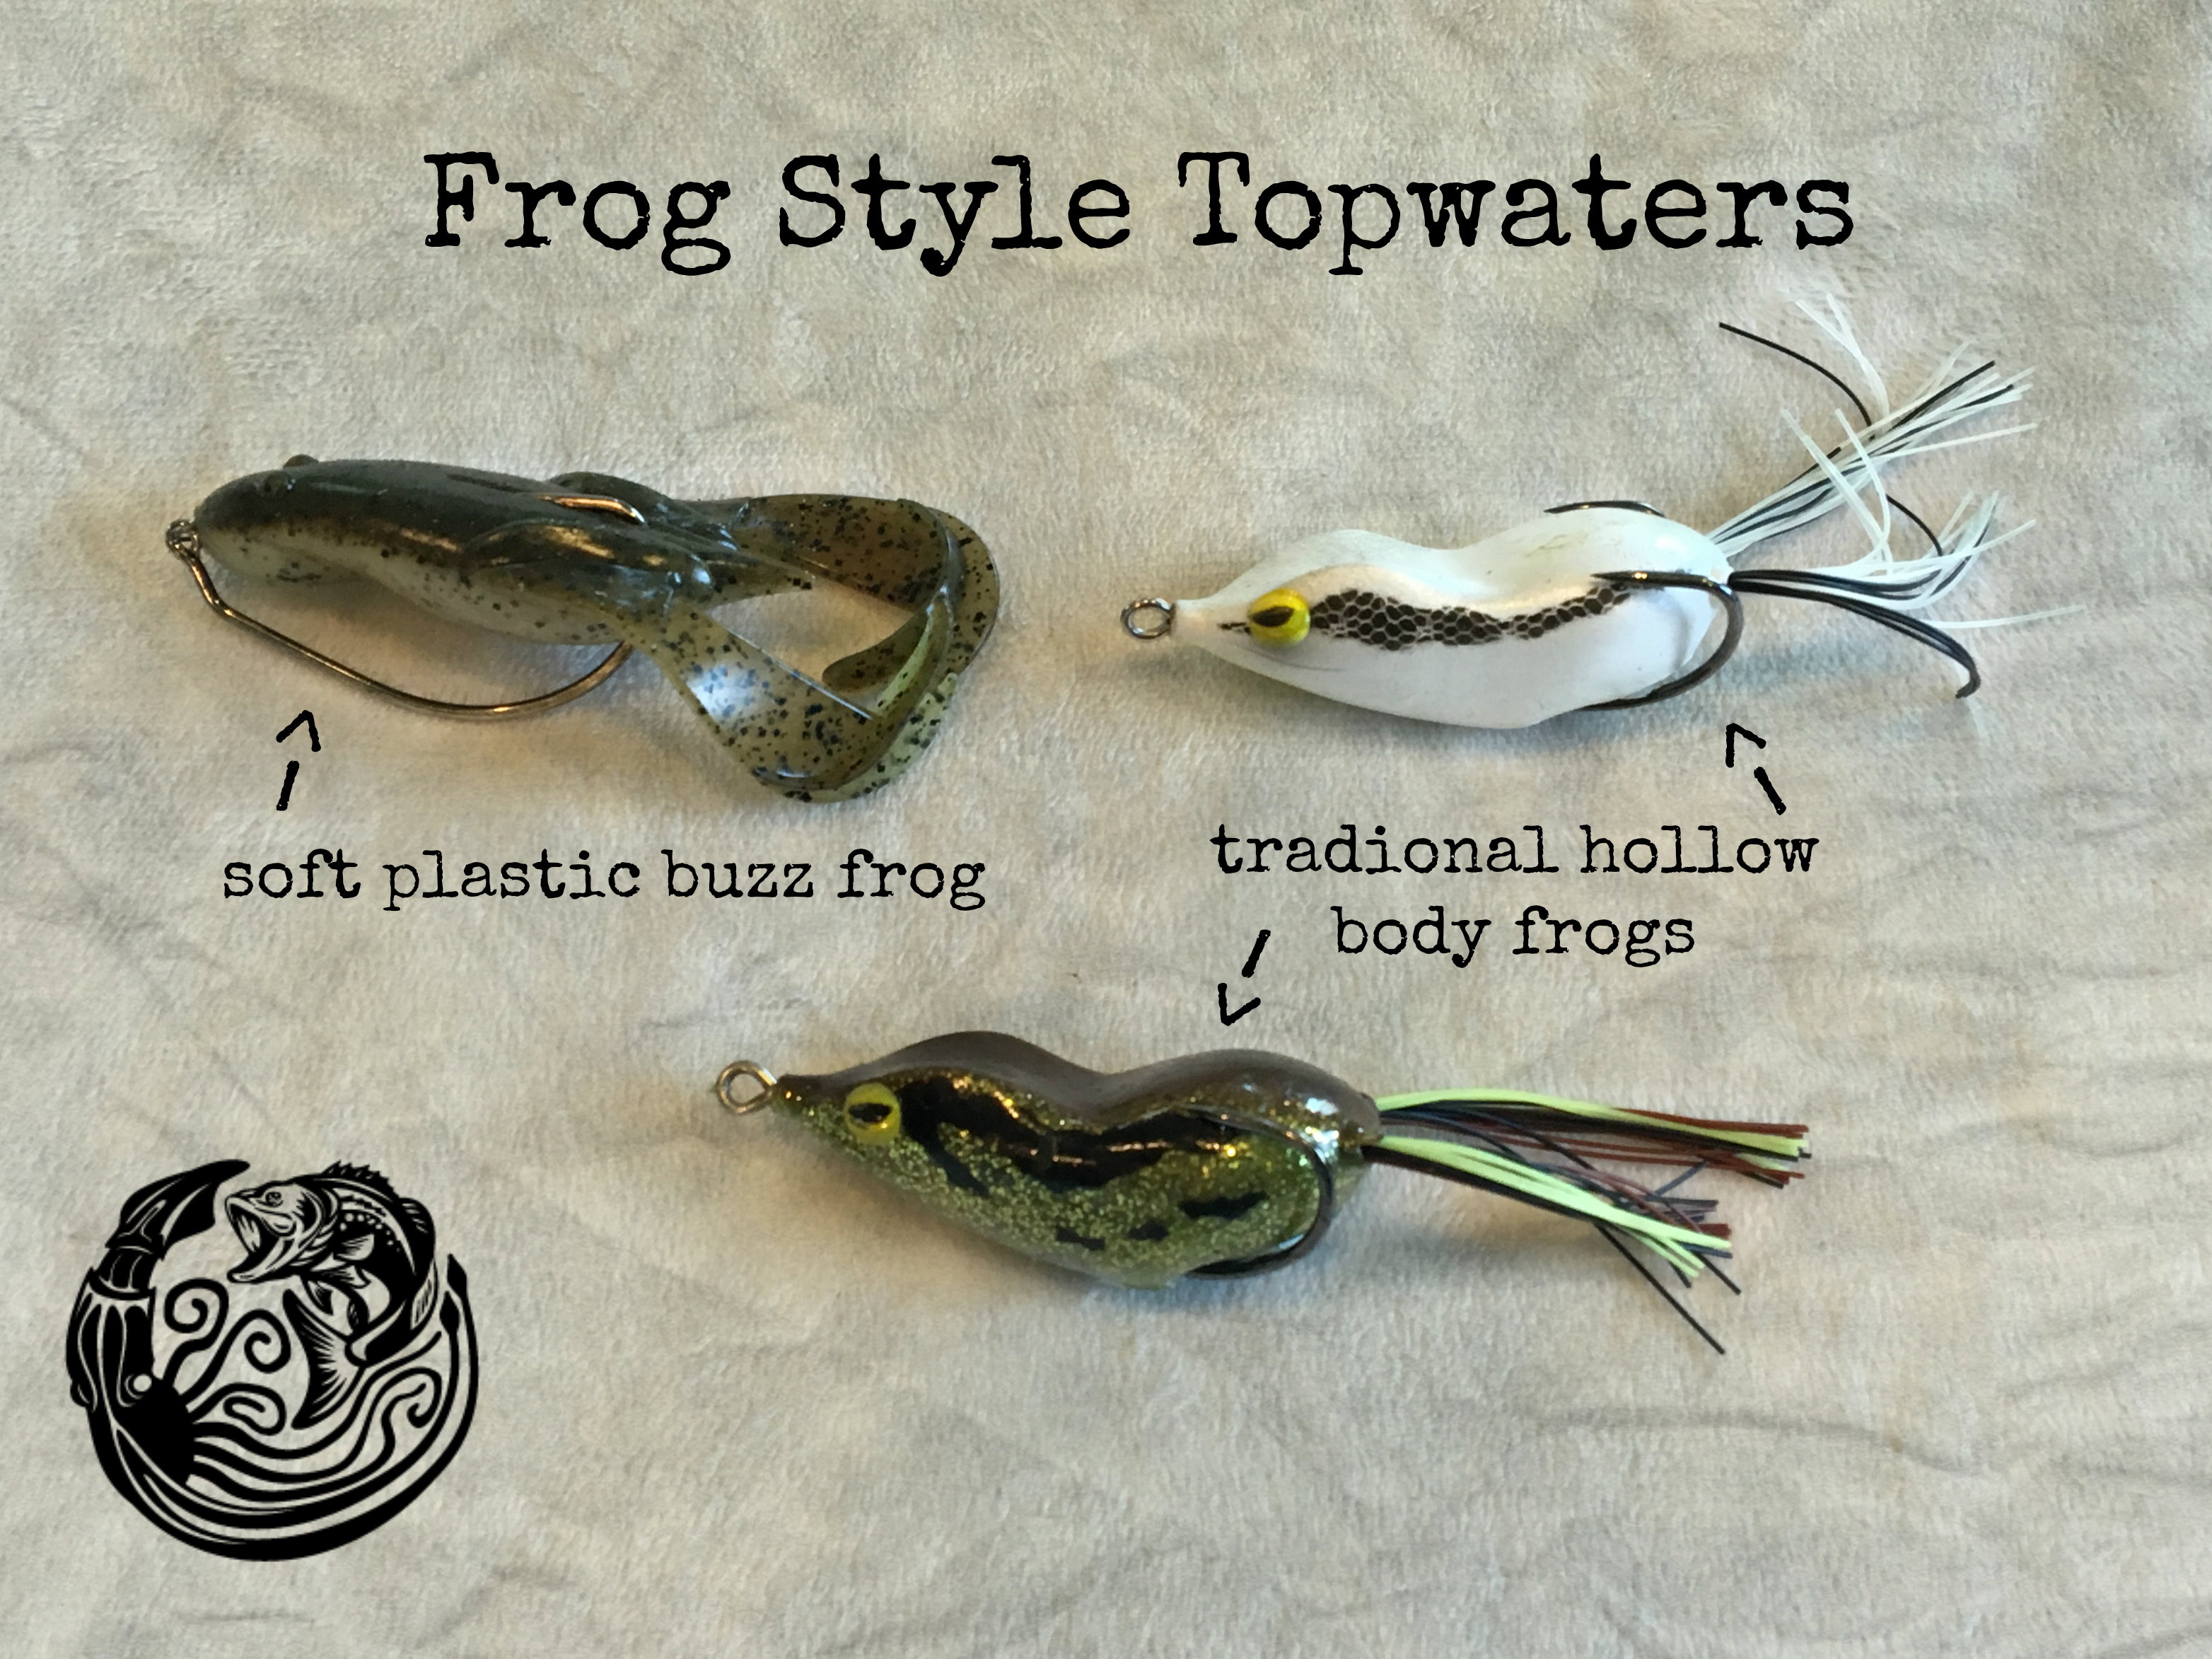 Bass fishing topwater lures where when what how to for Frog lures for bass fishing